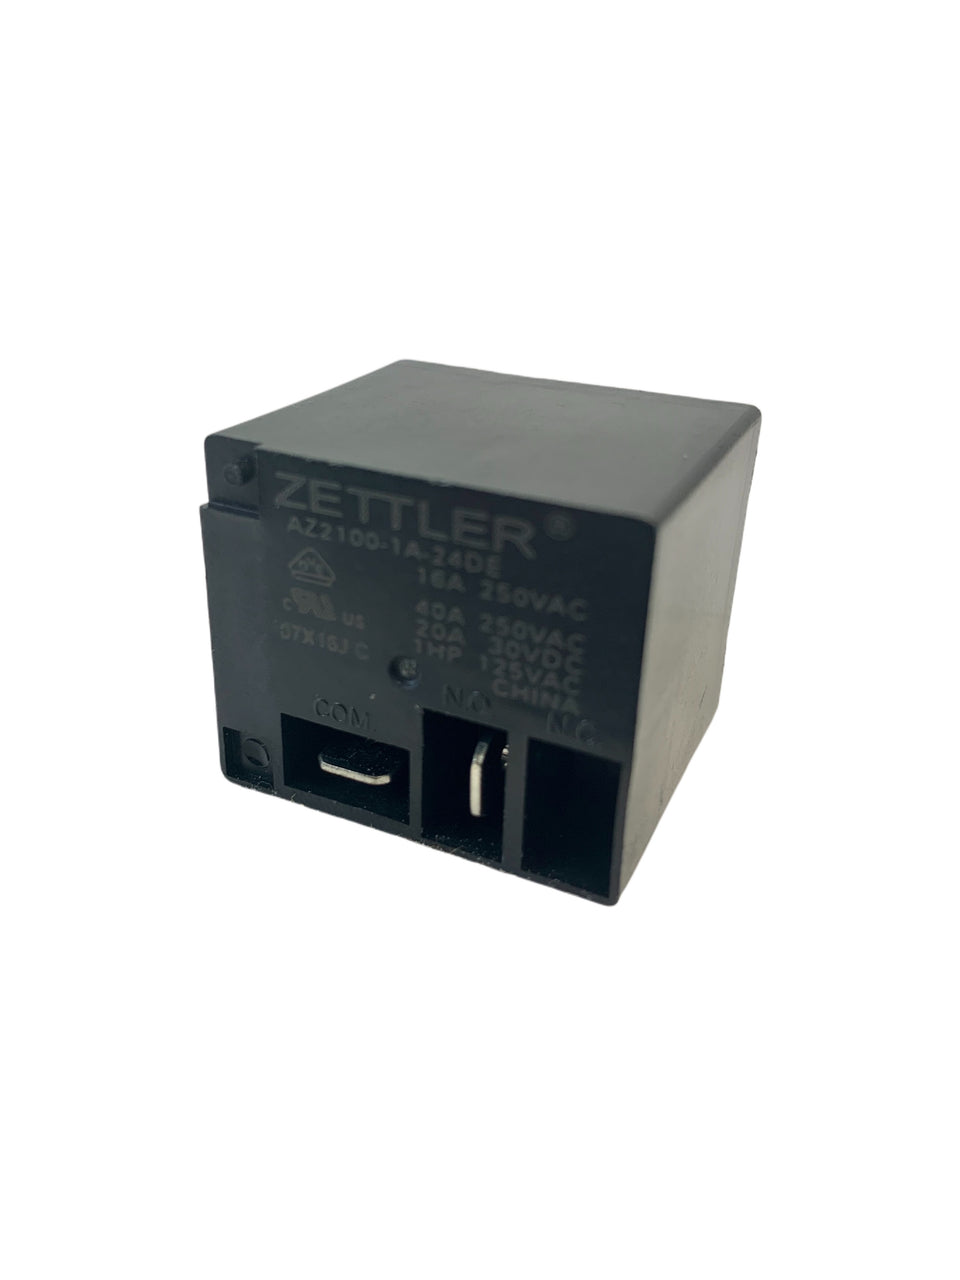 American Zettler AZ2100-1A-24DE Power Relay E-MechSPST24 VDC Vol-Rtg 300/30